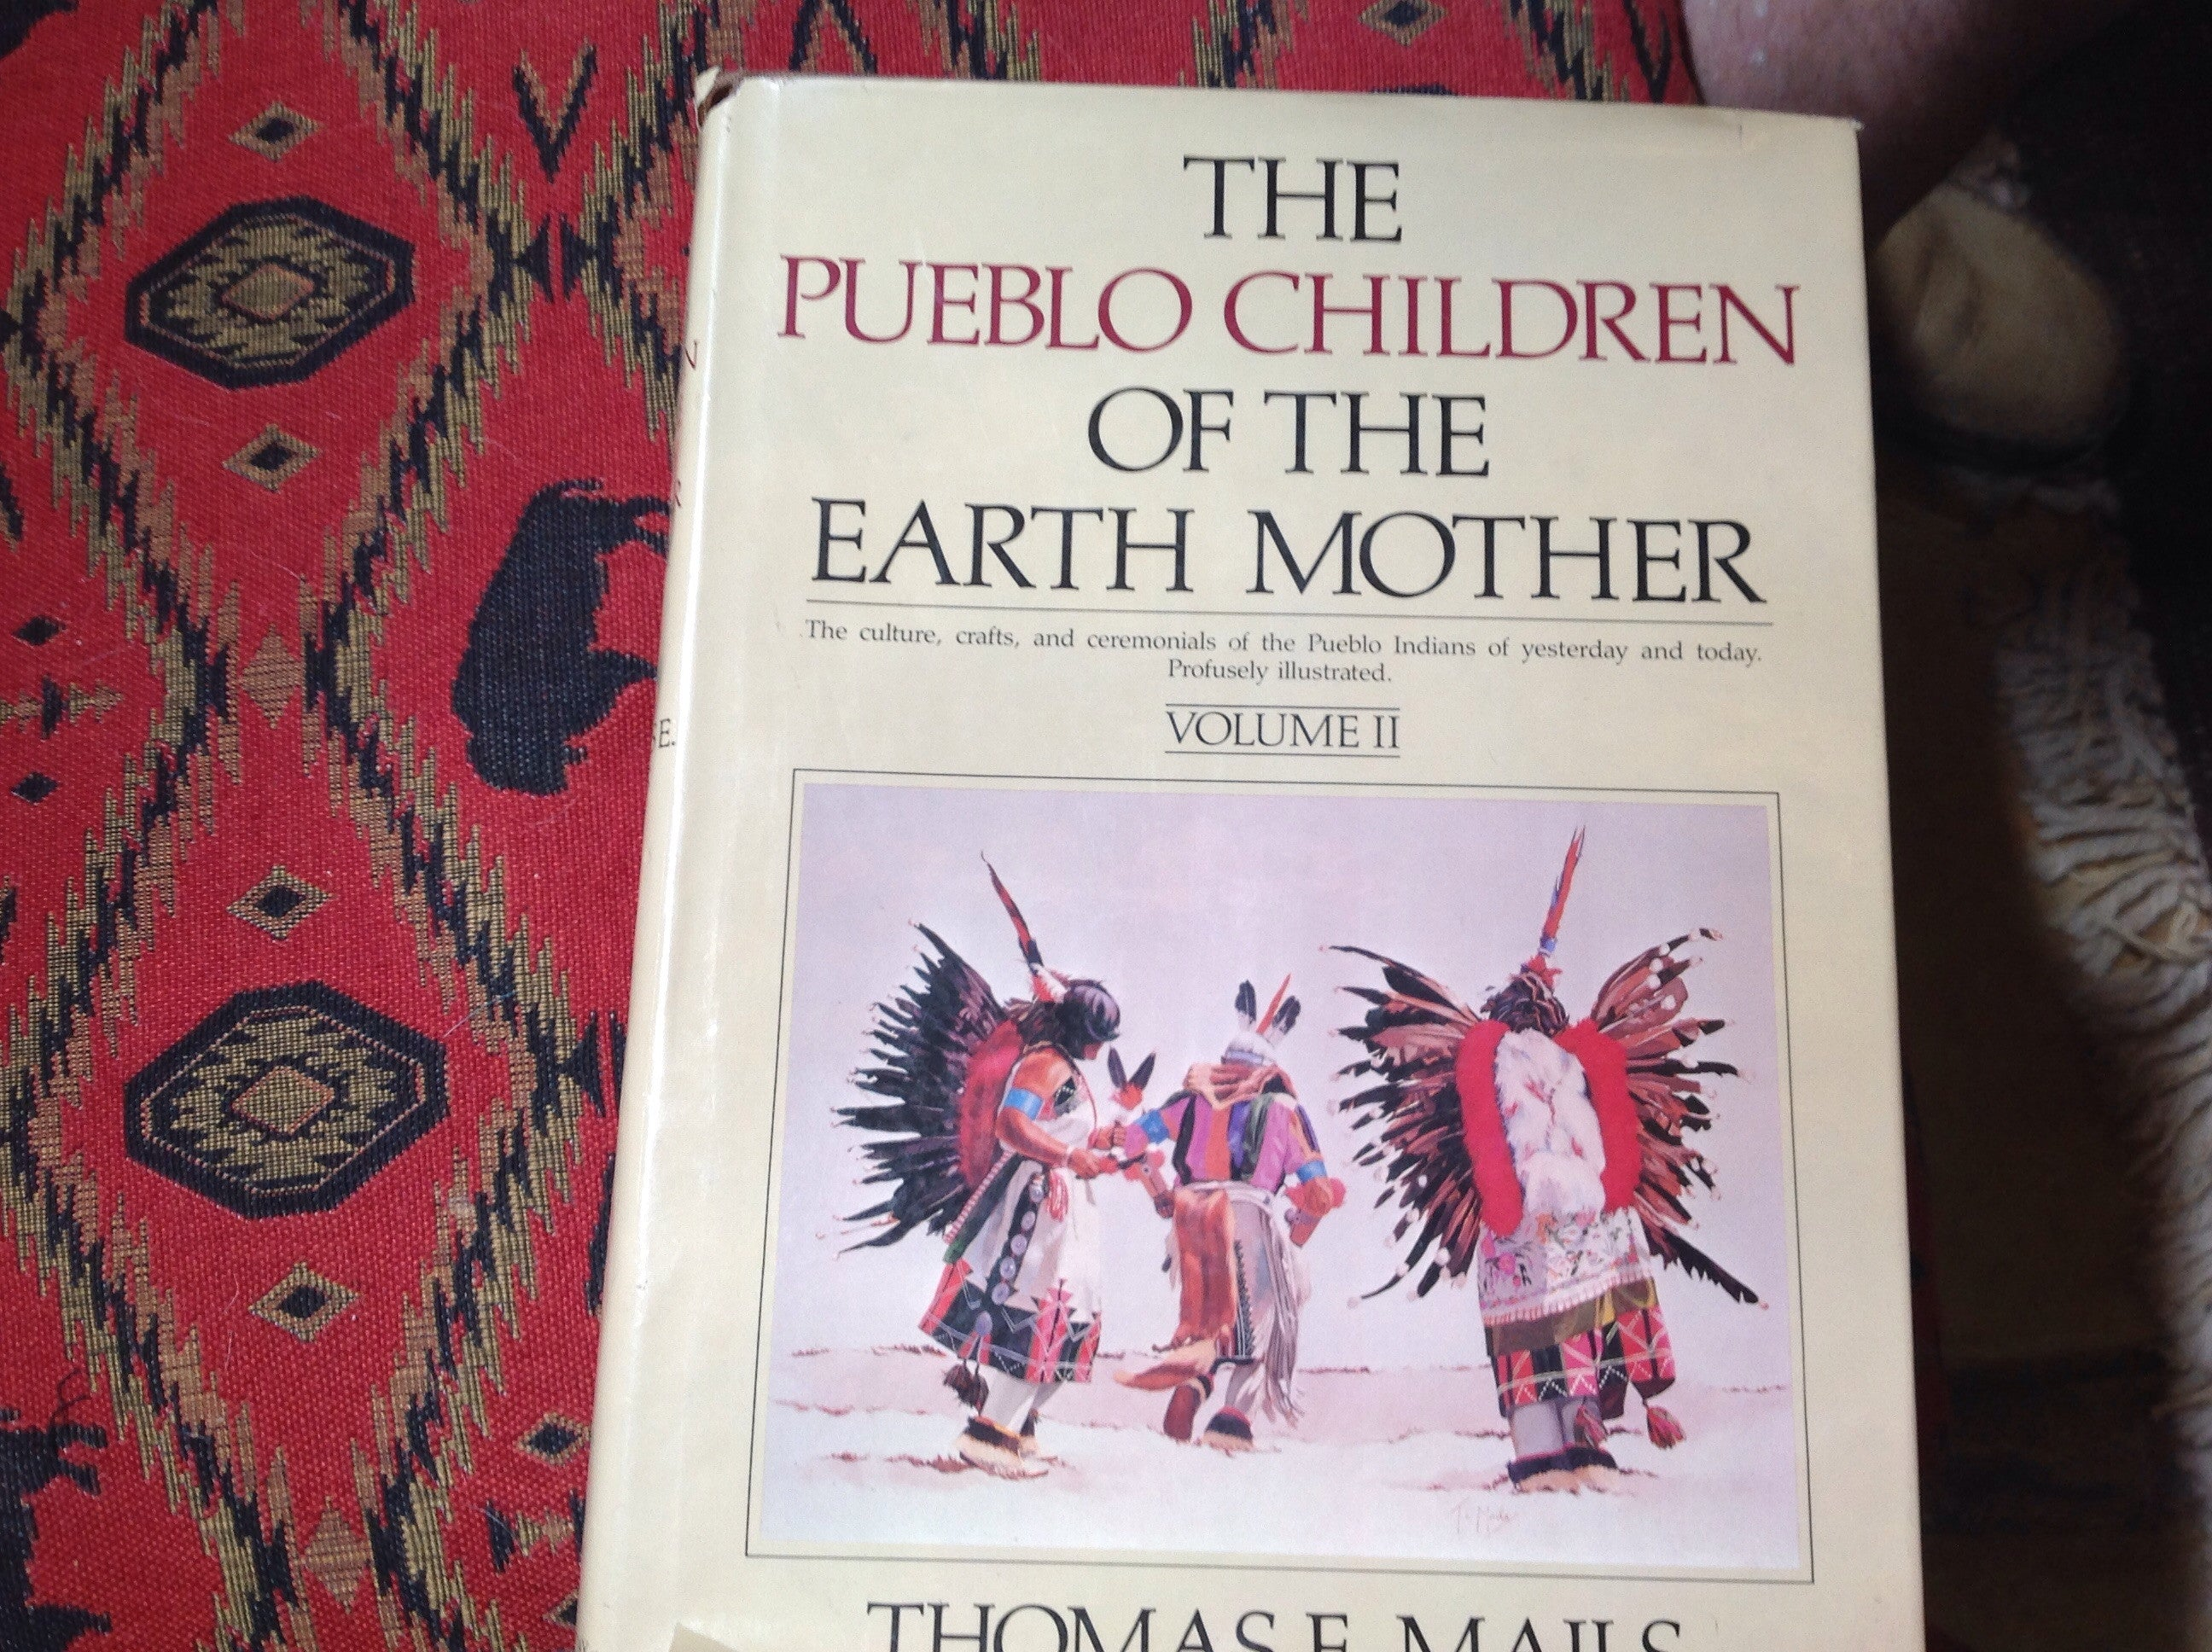 BOOKS - The Pueblo Children of the Earth Mother: Vol. II